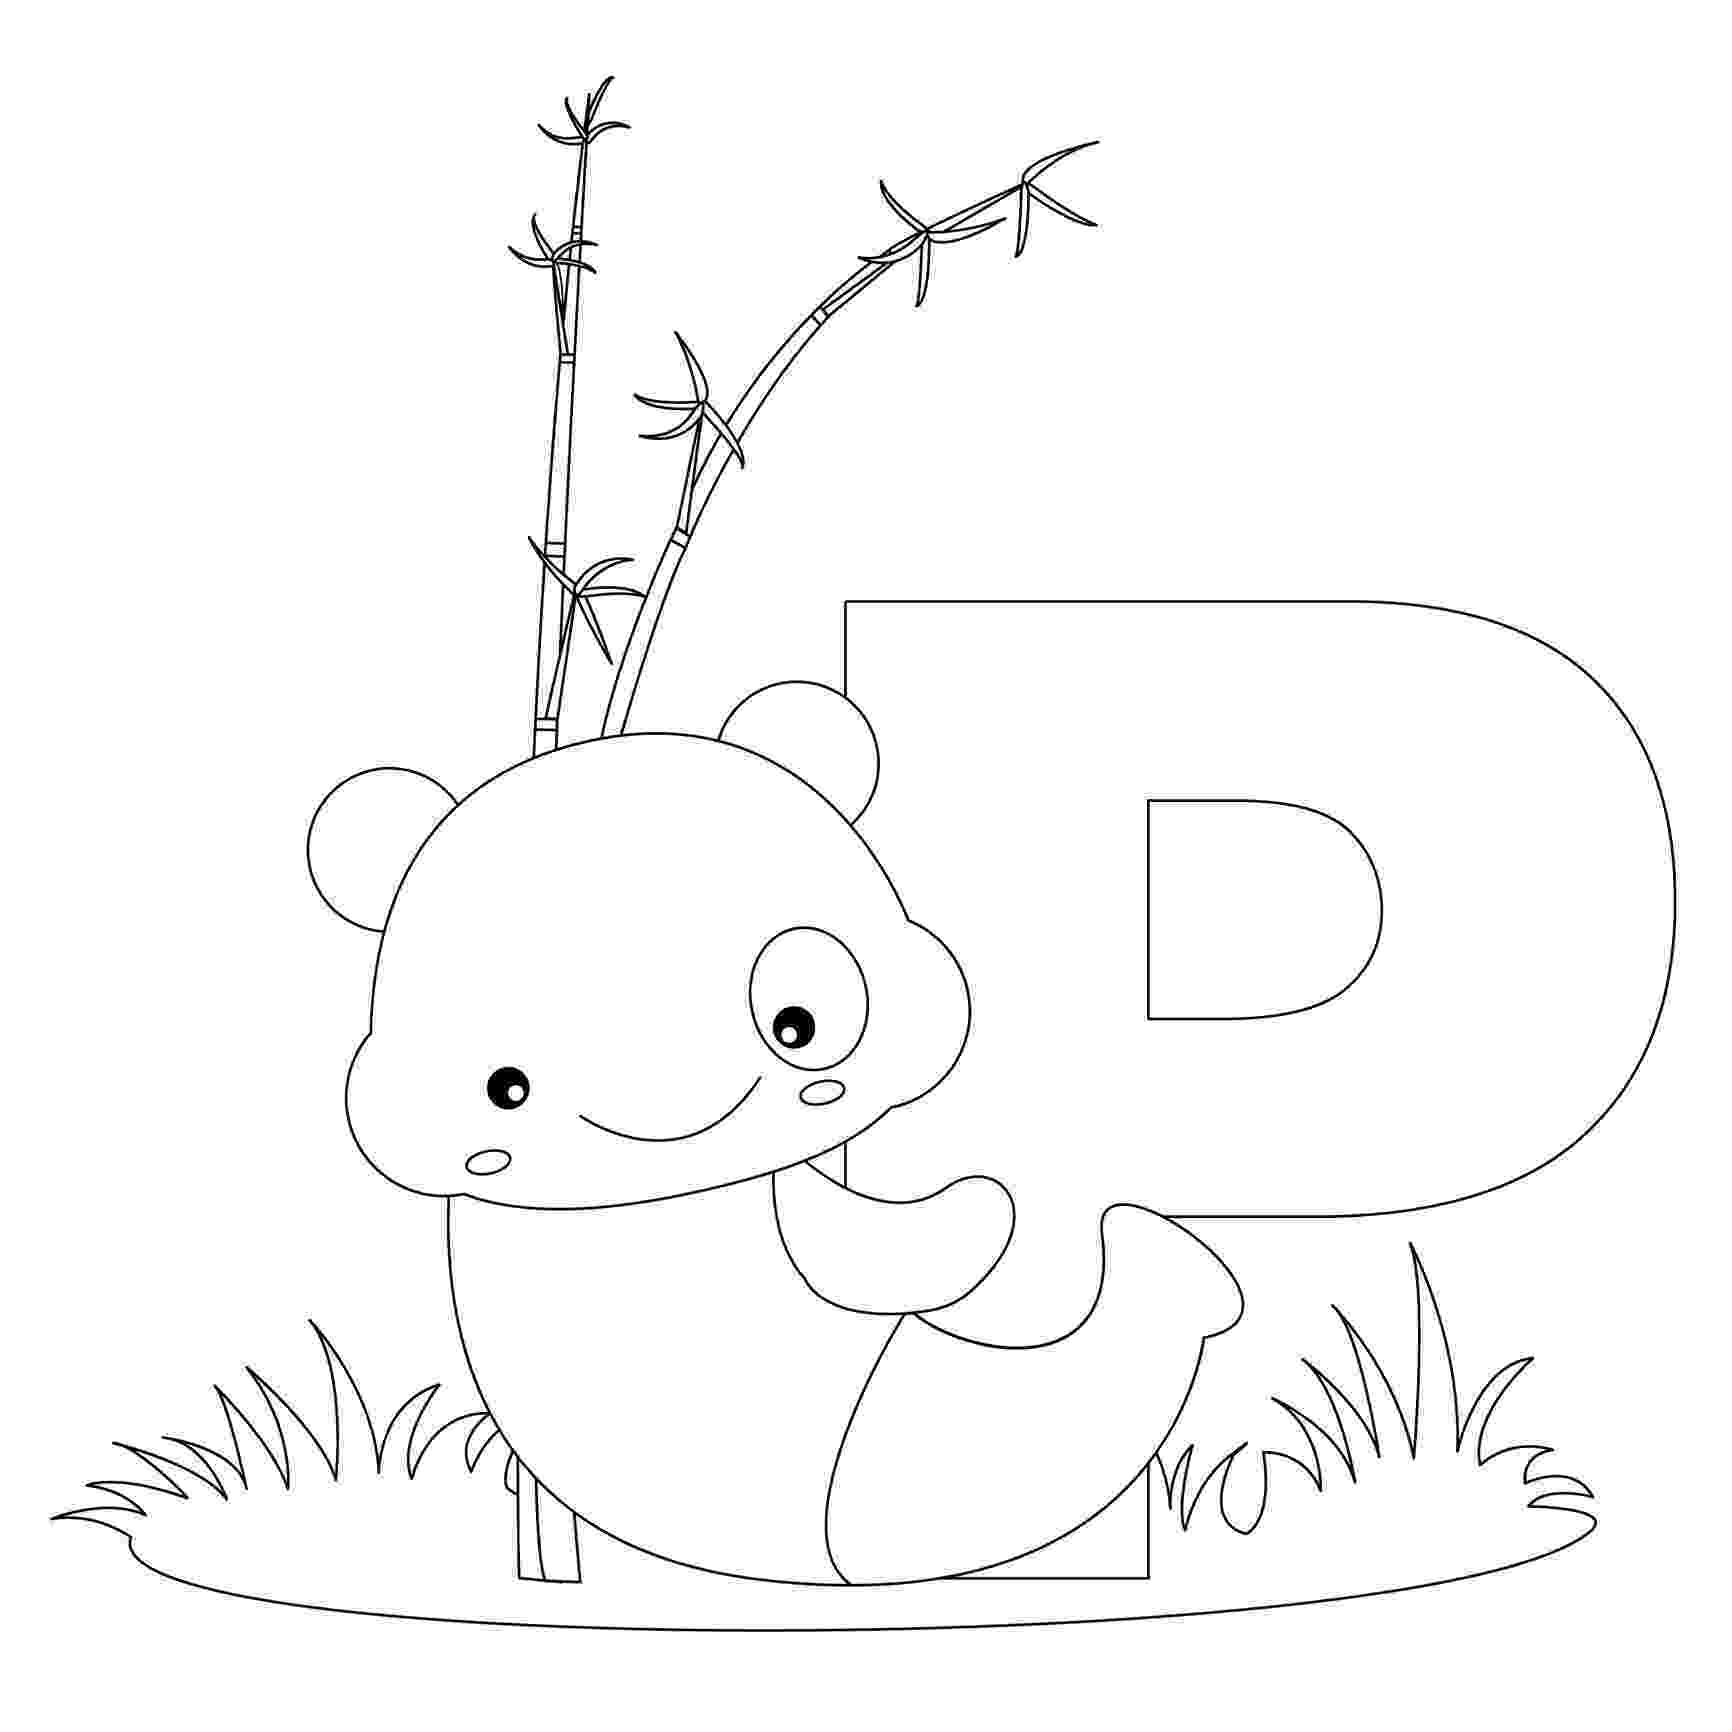 printable coloring alphabet letters free printable alphabet coloring pages for kids best coloring alphabet letters printable